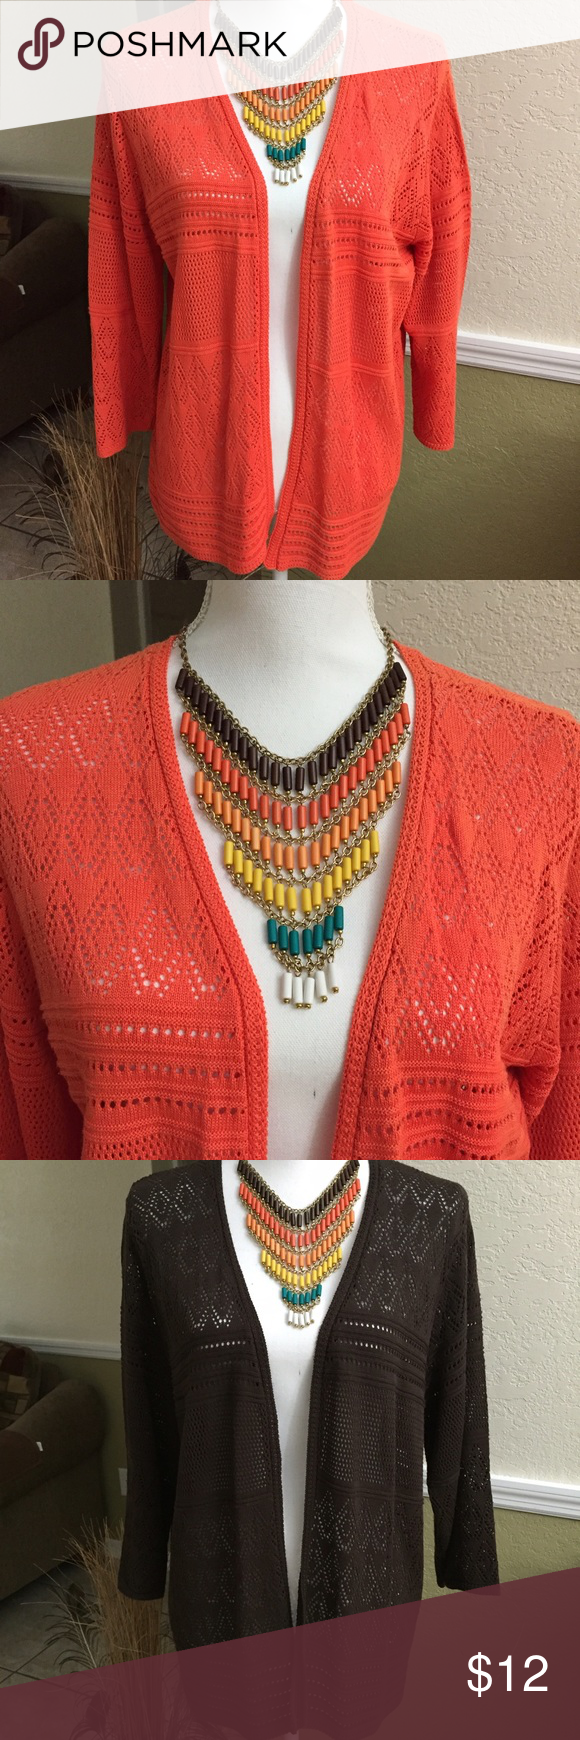 Alfred Dunner Cardigan Gorgeous orange cover up, only used once, to big for me, excellent condition, also have a brown and teal color available, please specify color when ordering, see pictures #3 & #4. Alfred Dunner Sweaters Cardigans